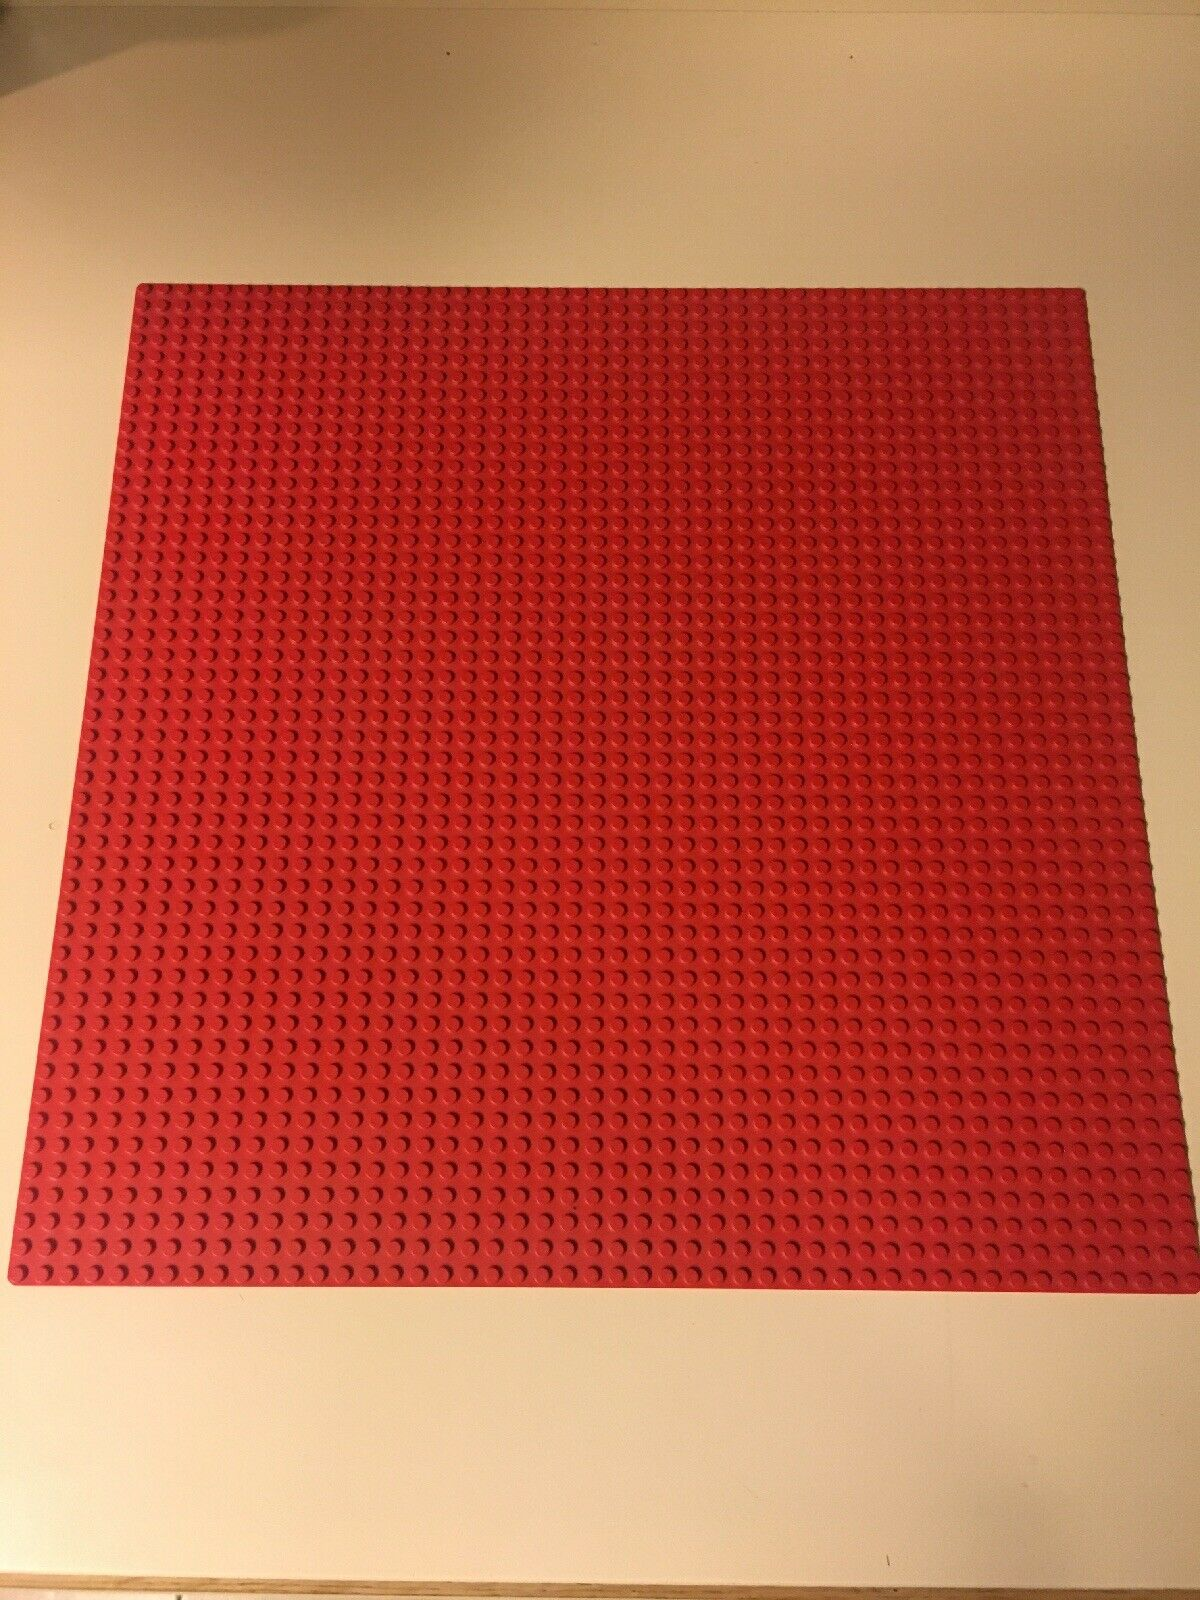 LEGO SUPER RARE  rot LEGO 48 X 48 Studded Base Plate. HARD TO FIND  15in X 15in